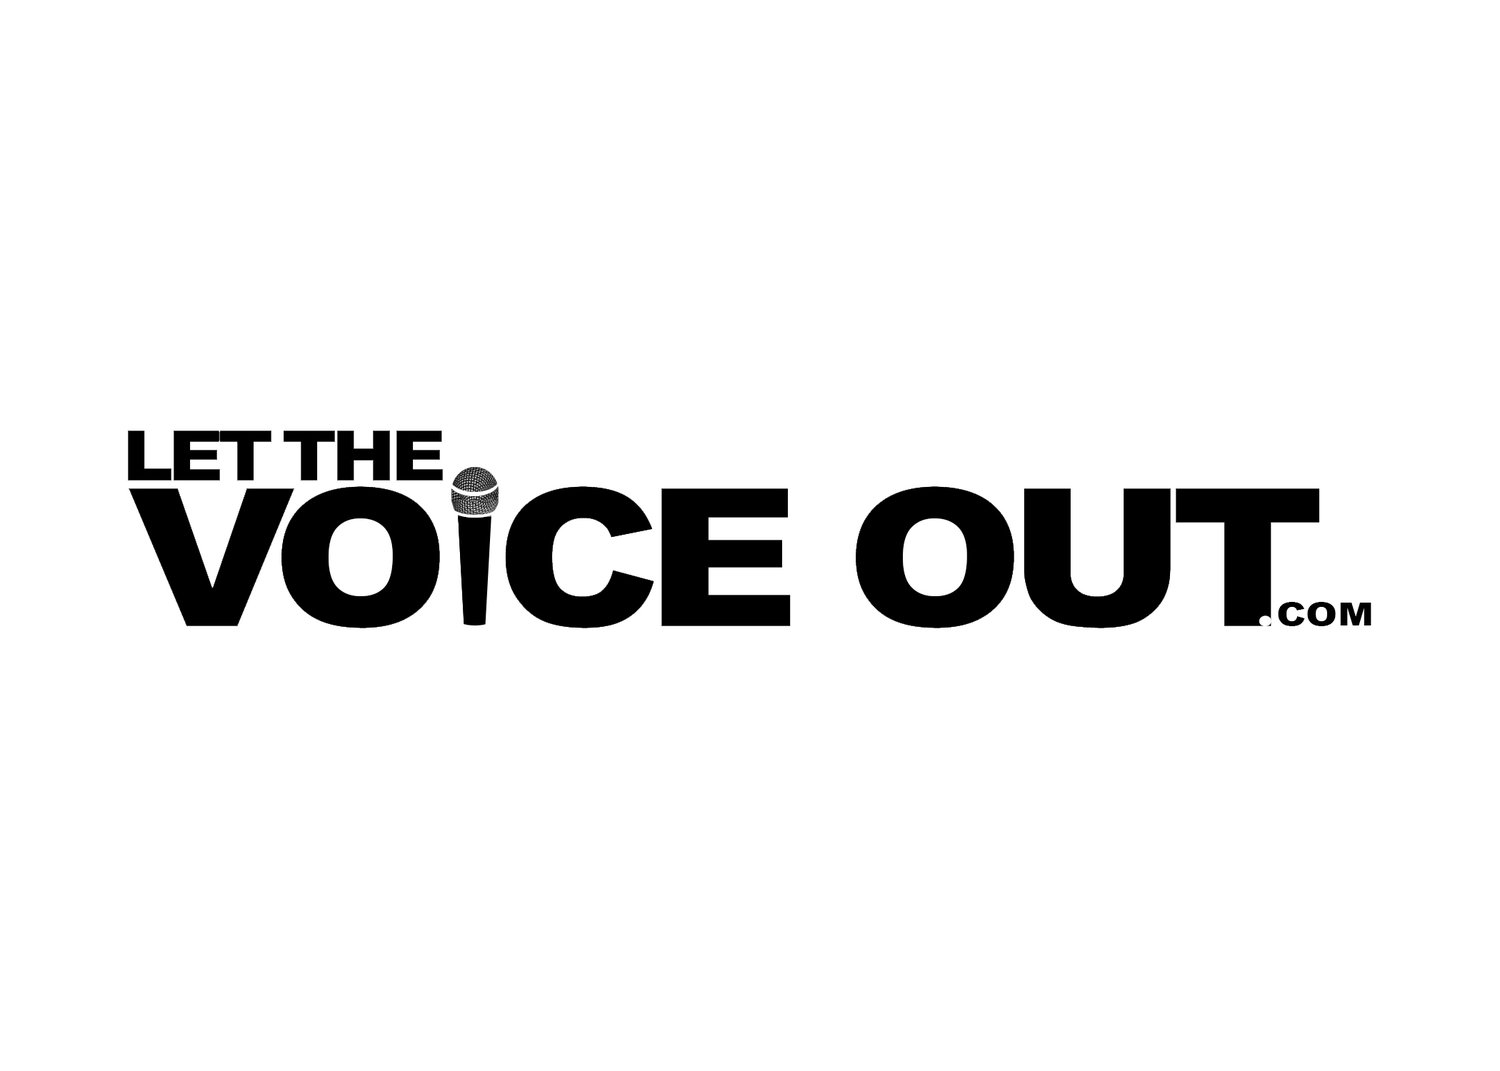 LET THE VOICE OUT! THE BOOK